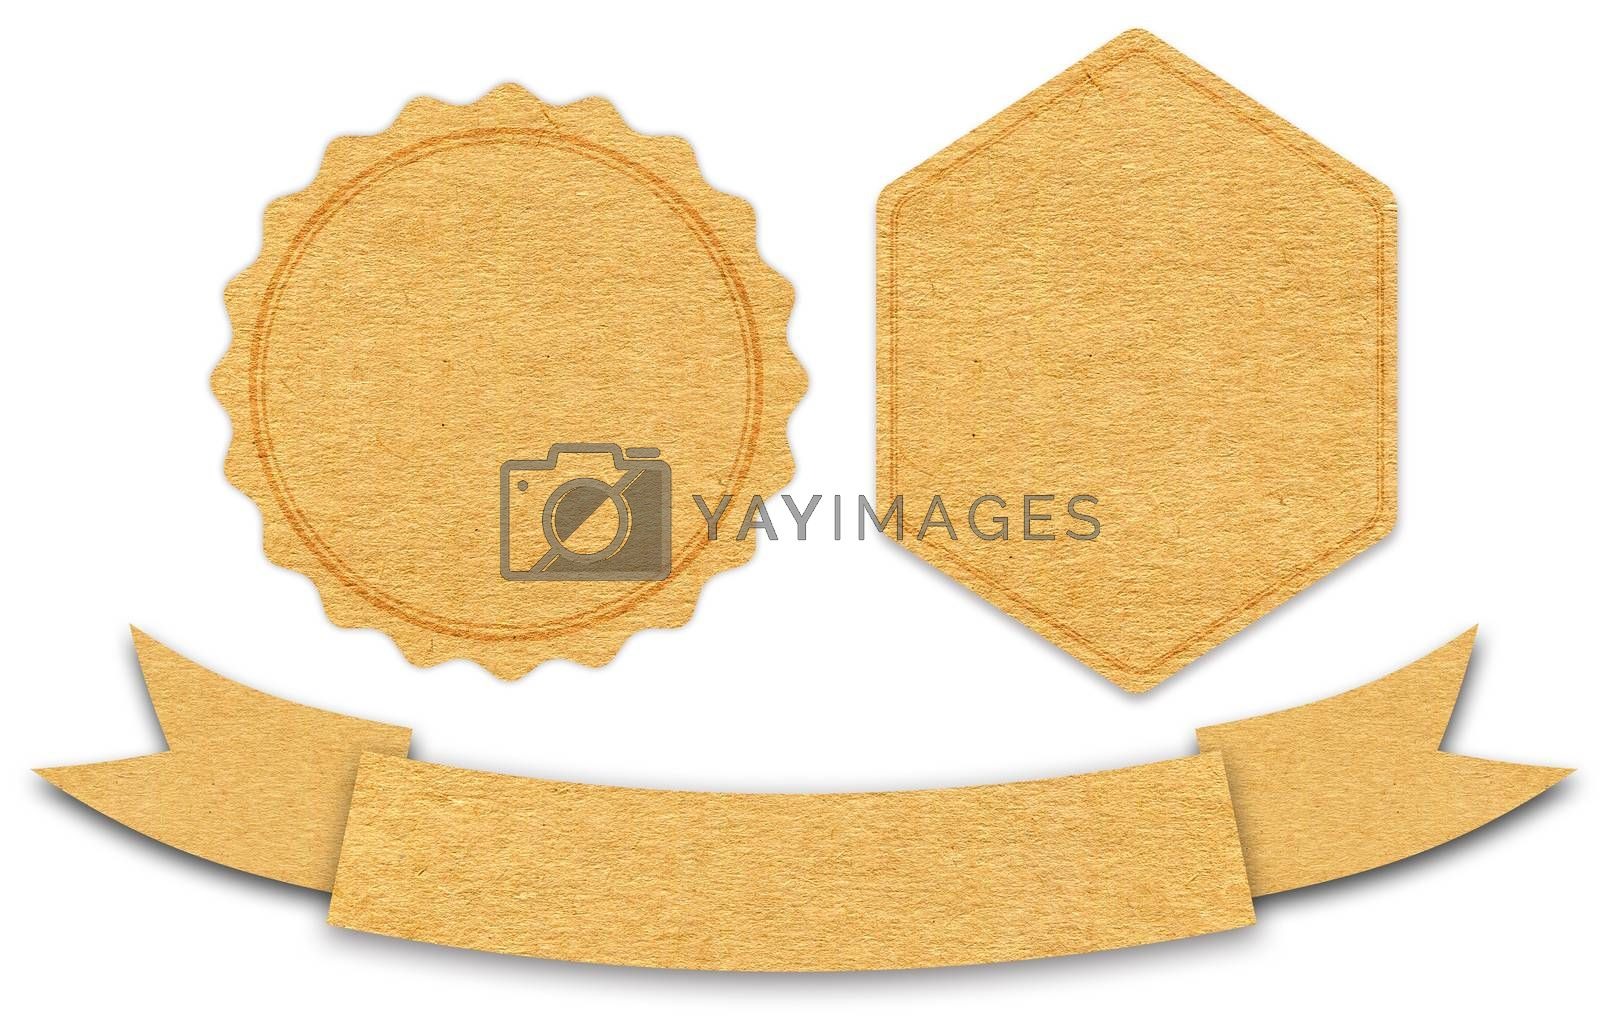 Vintage Paper Label isolated on white background